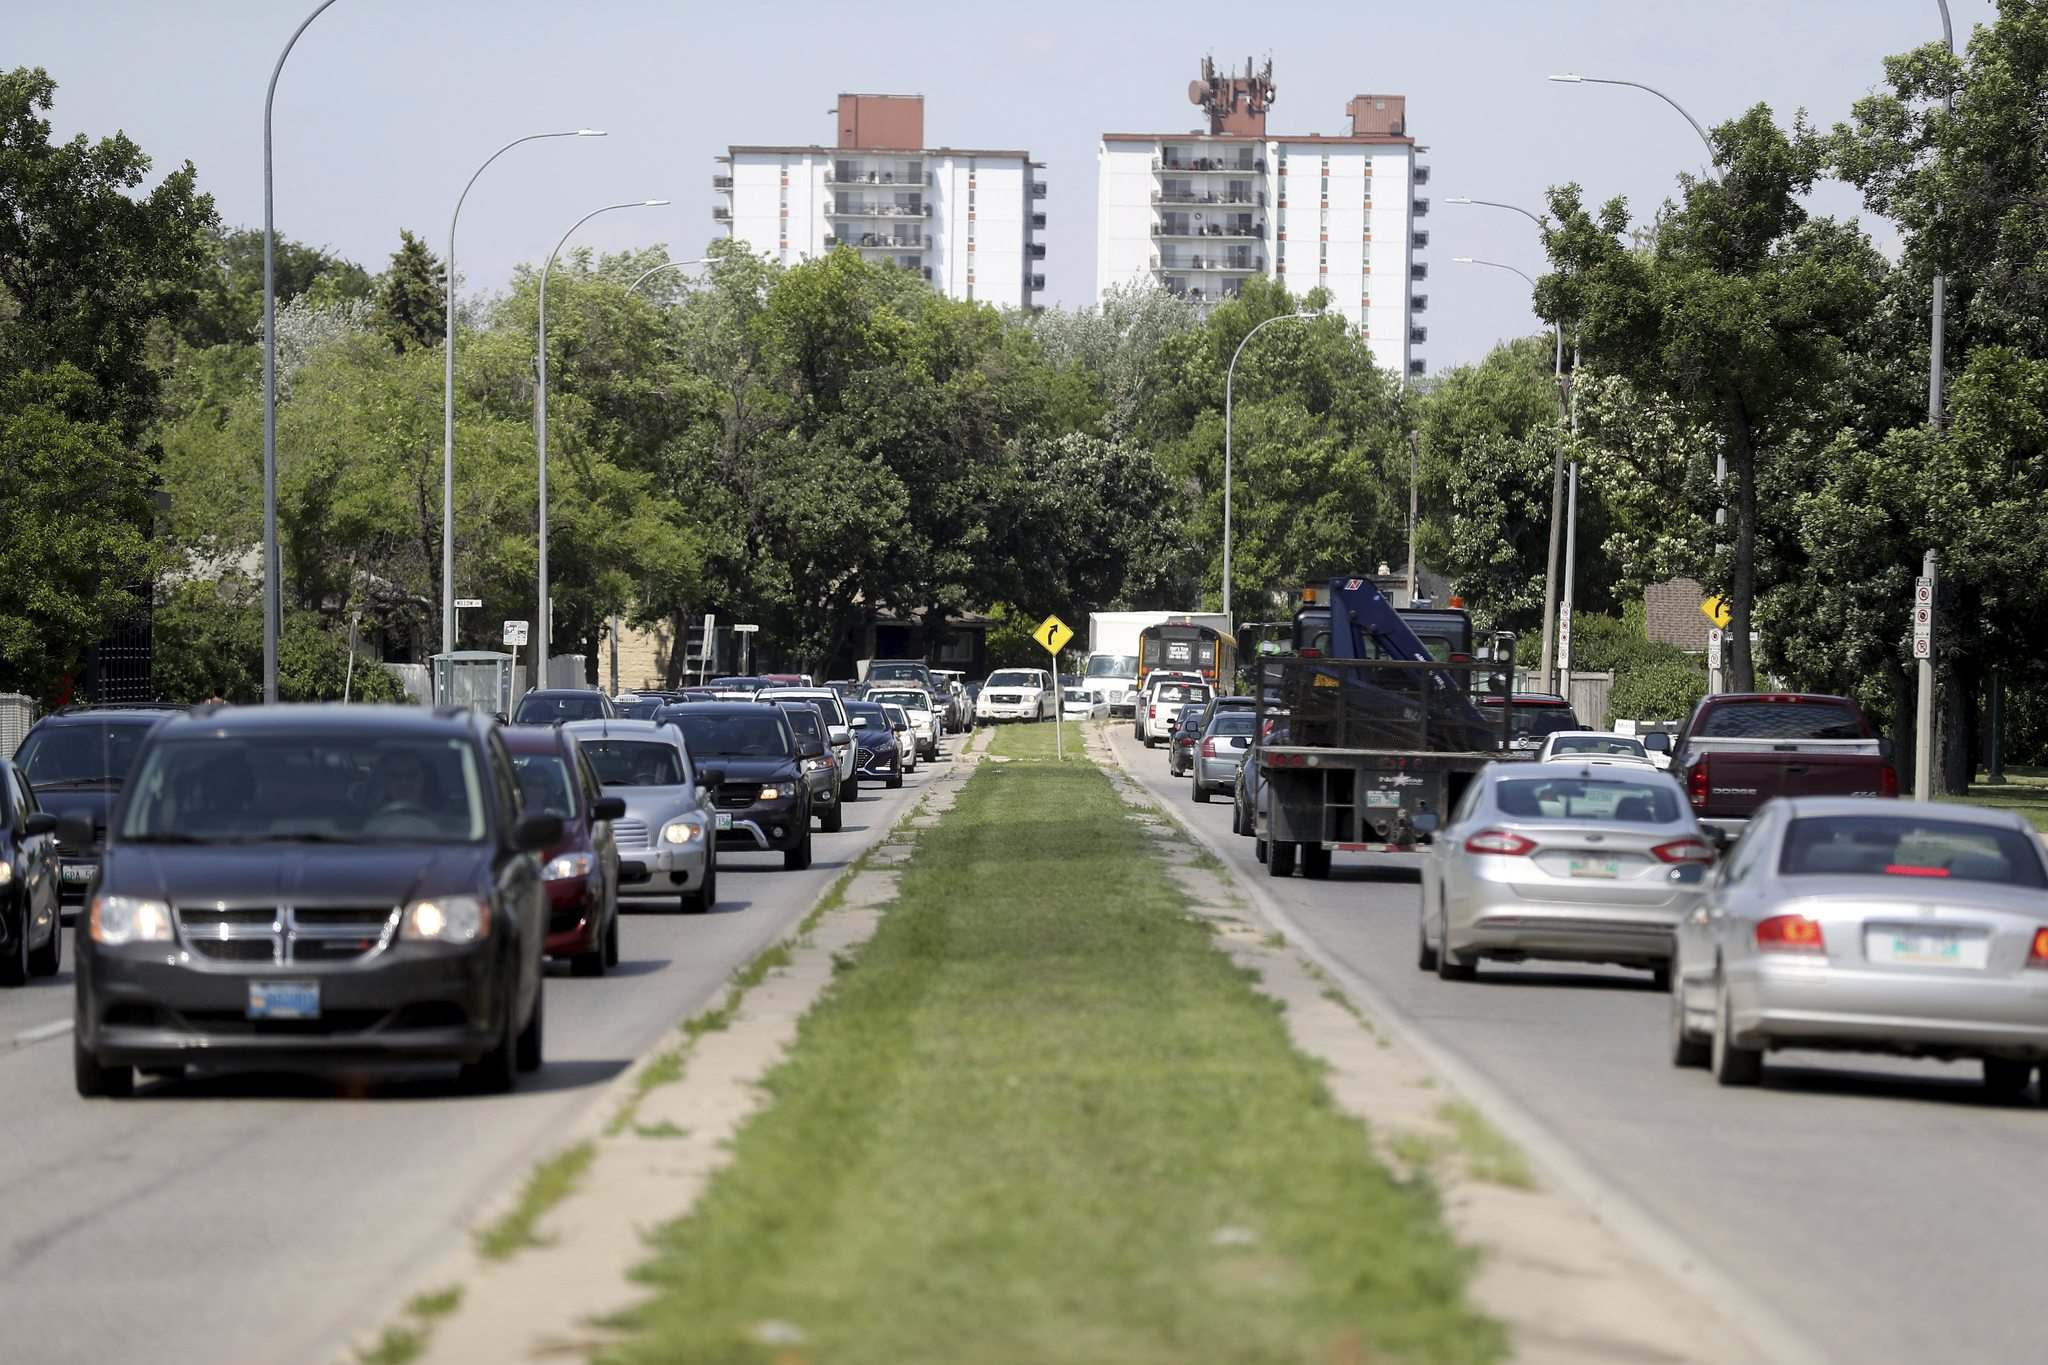 TREVOR HAGAN / WINNIPEG FREE PRESs Files</p><p>Like the 'great' streets in other cities, Kenaston Boulevard has the potential to move large volumes of traffic while allowing adjoining neighbourhoods to thrive.</p>